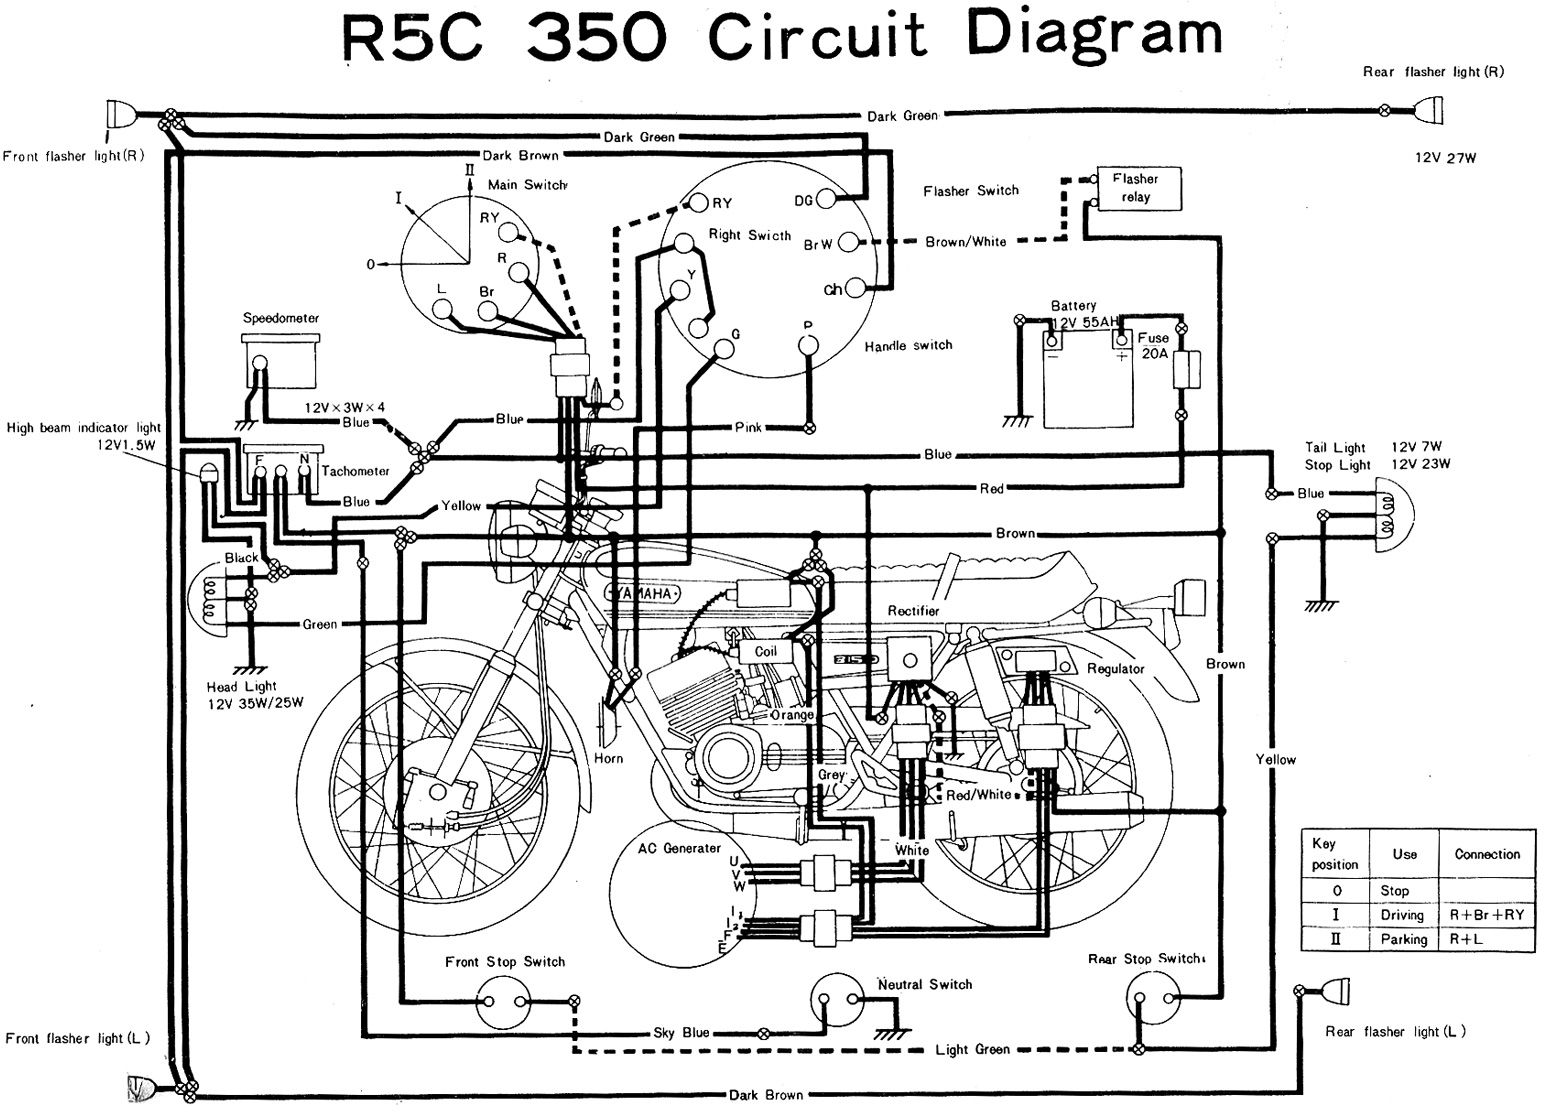 hight resolution of yamaha rd350 r5c wiring diagram u2013 evan fell motorcycle worksyamaha rd350 r5c wiring diagram